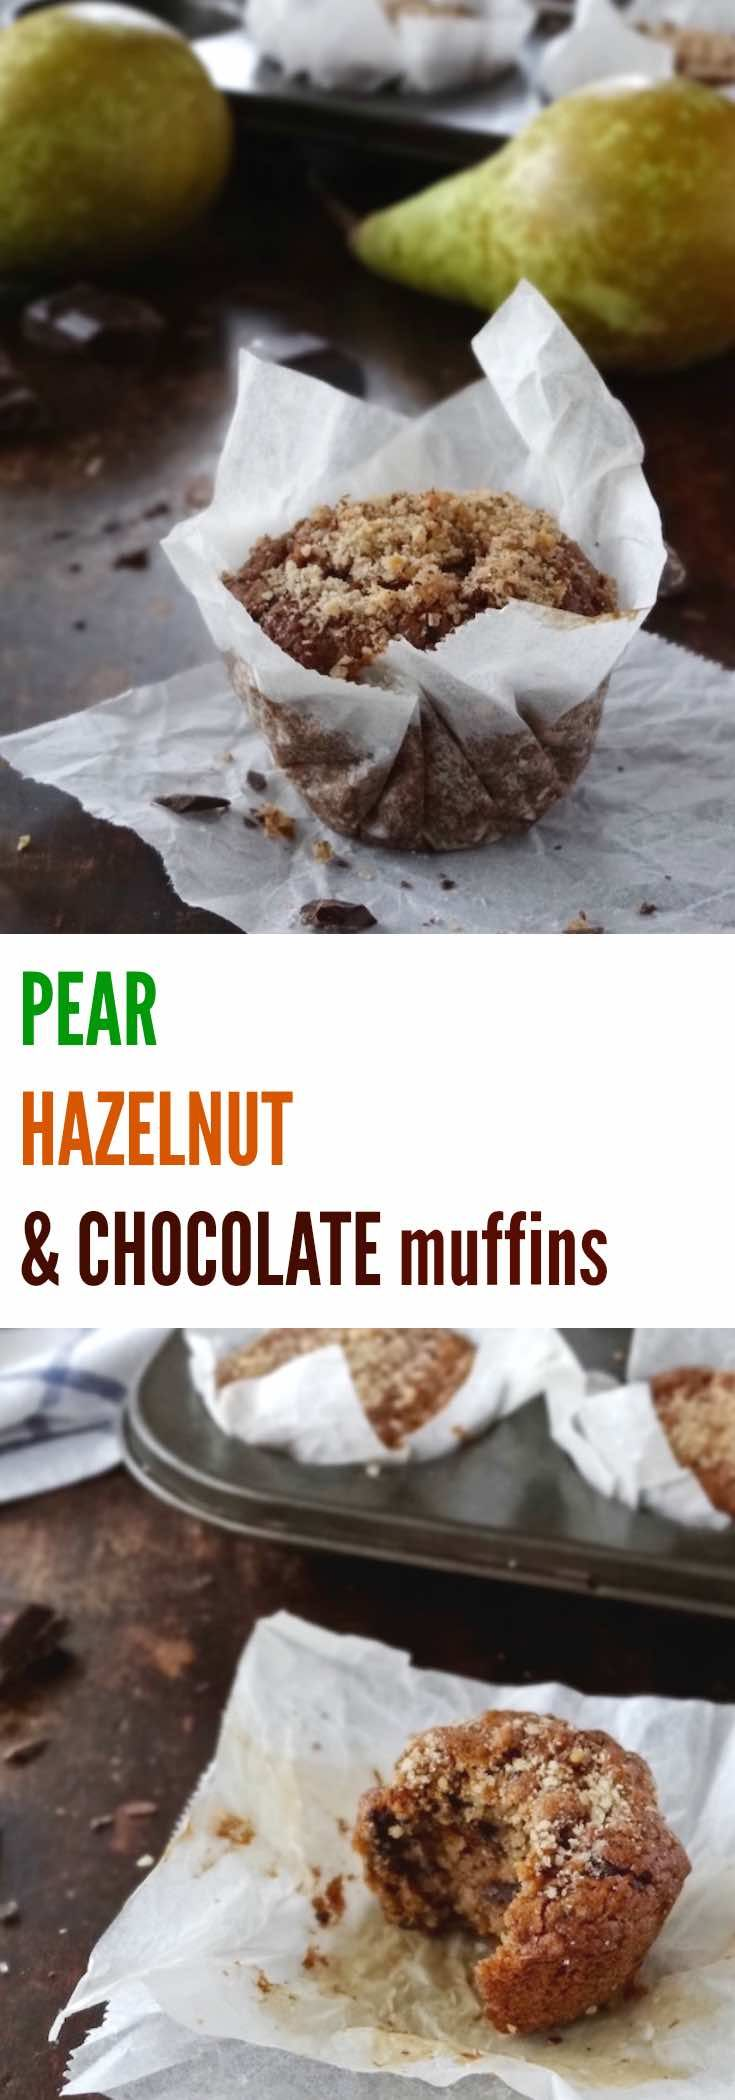 These gluten free pear, hazelnut & chocolate muffins are easy to throw together, great for breakfast or the lunch box and freeze perfectly. Eat them warm and you'll be rewarded with gooey chocolate chunks too.